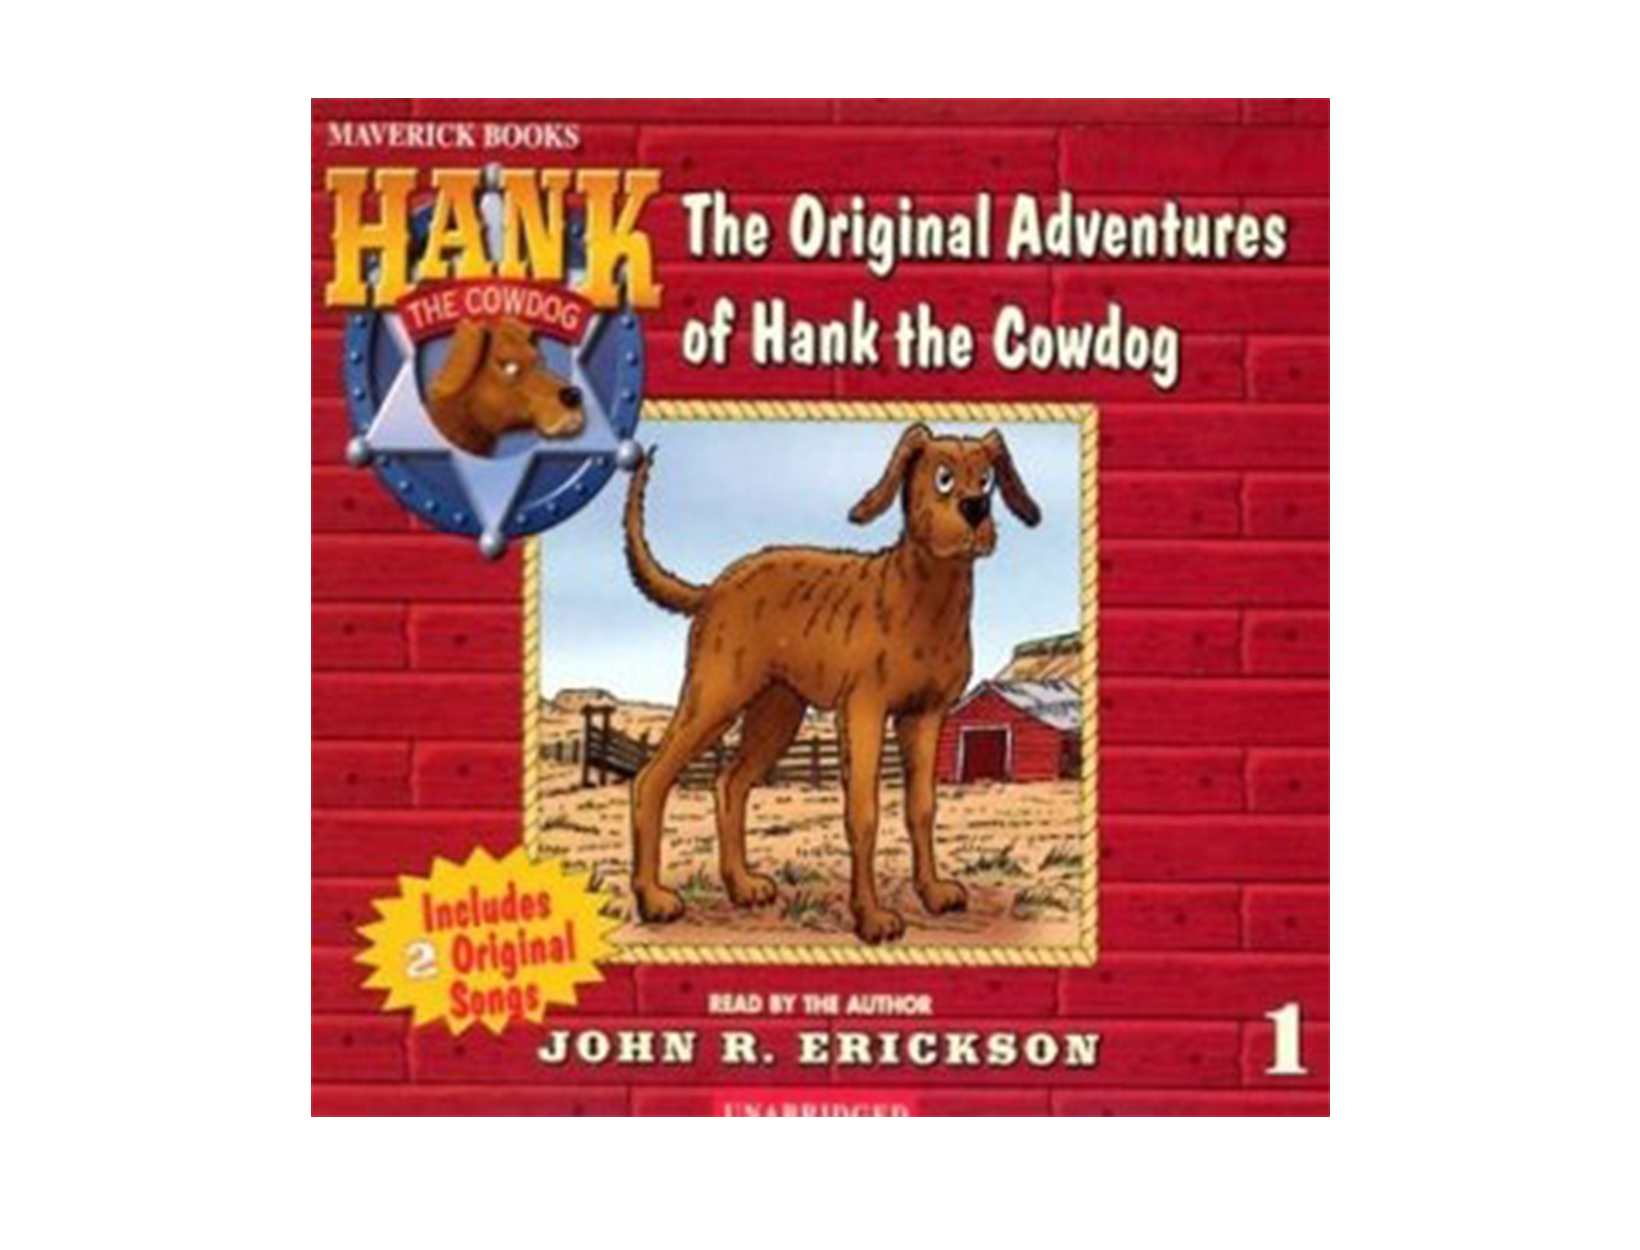 Hank the Cowdog, written & read by John R. Erickson